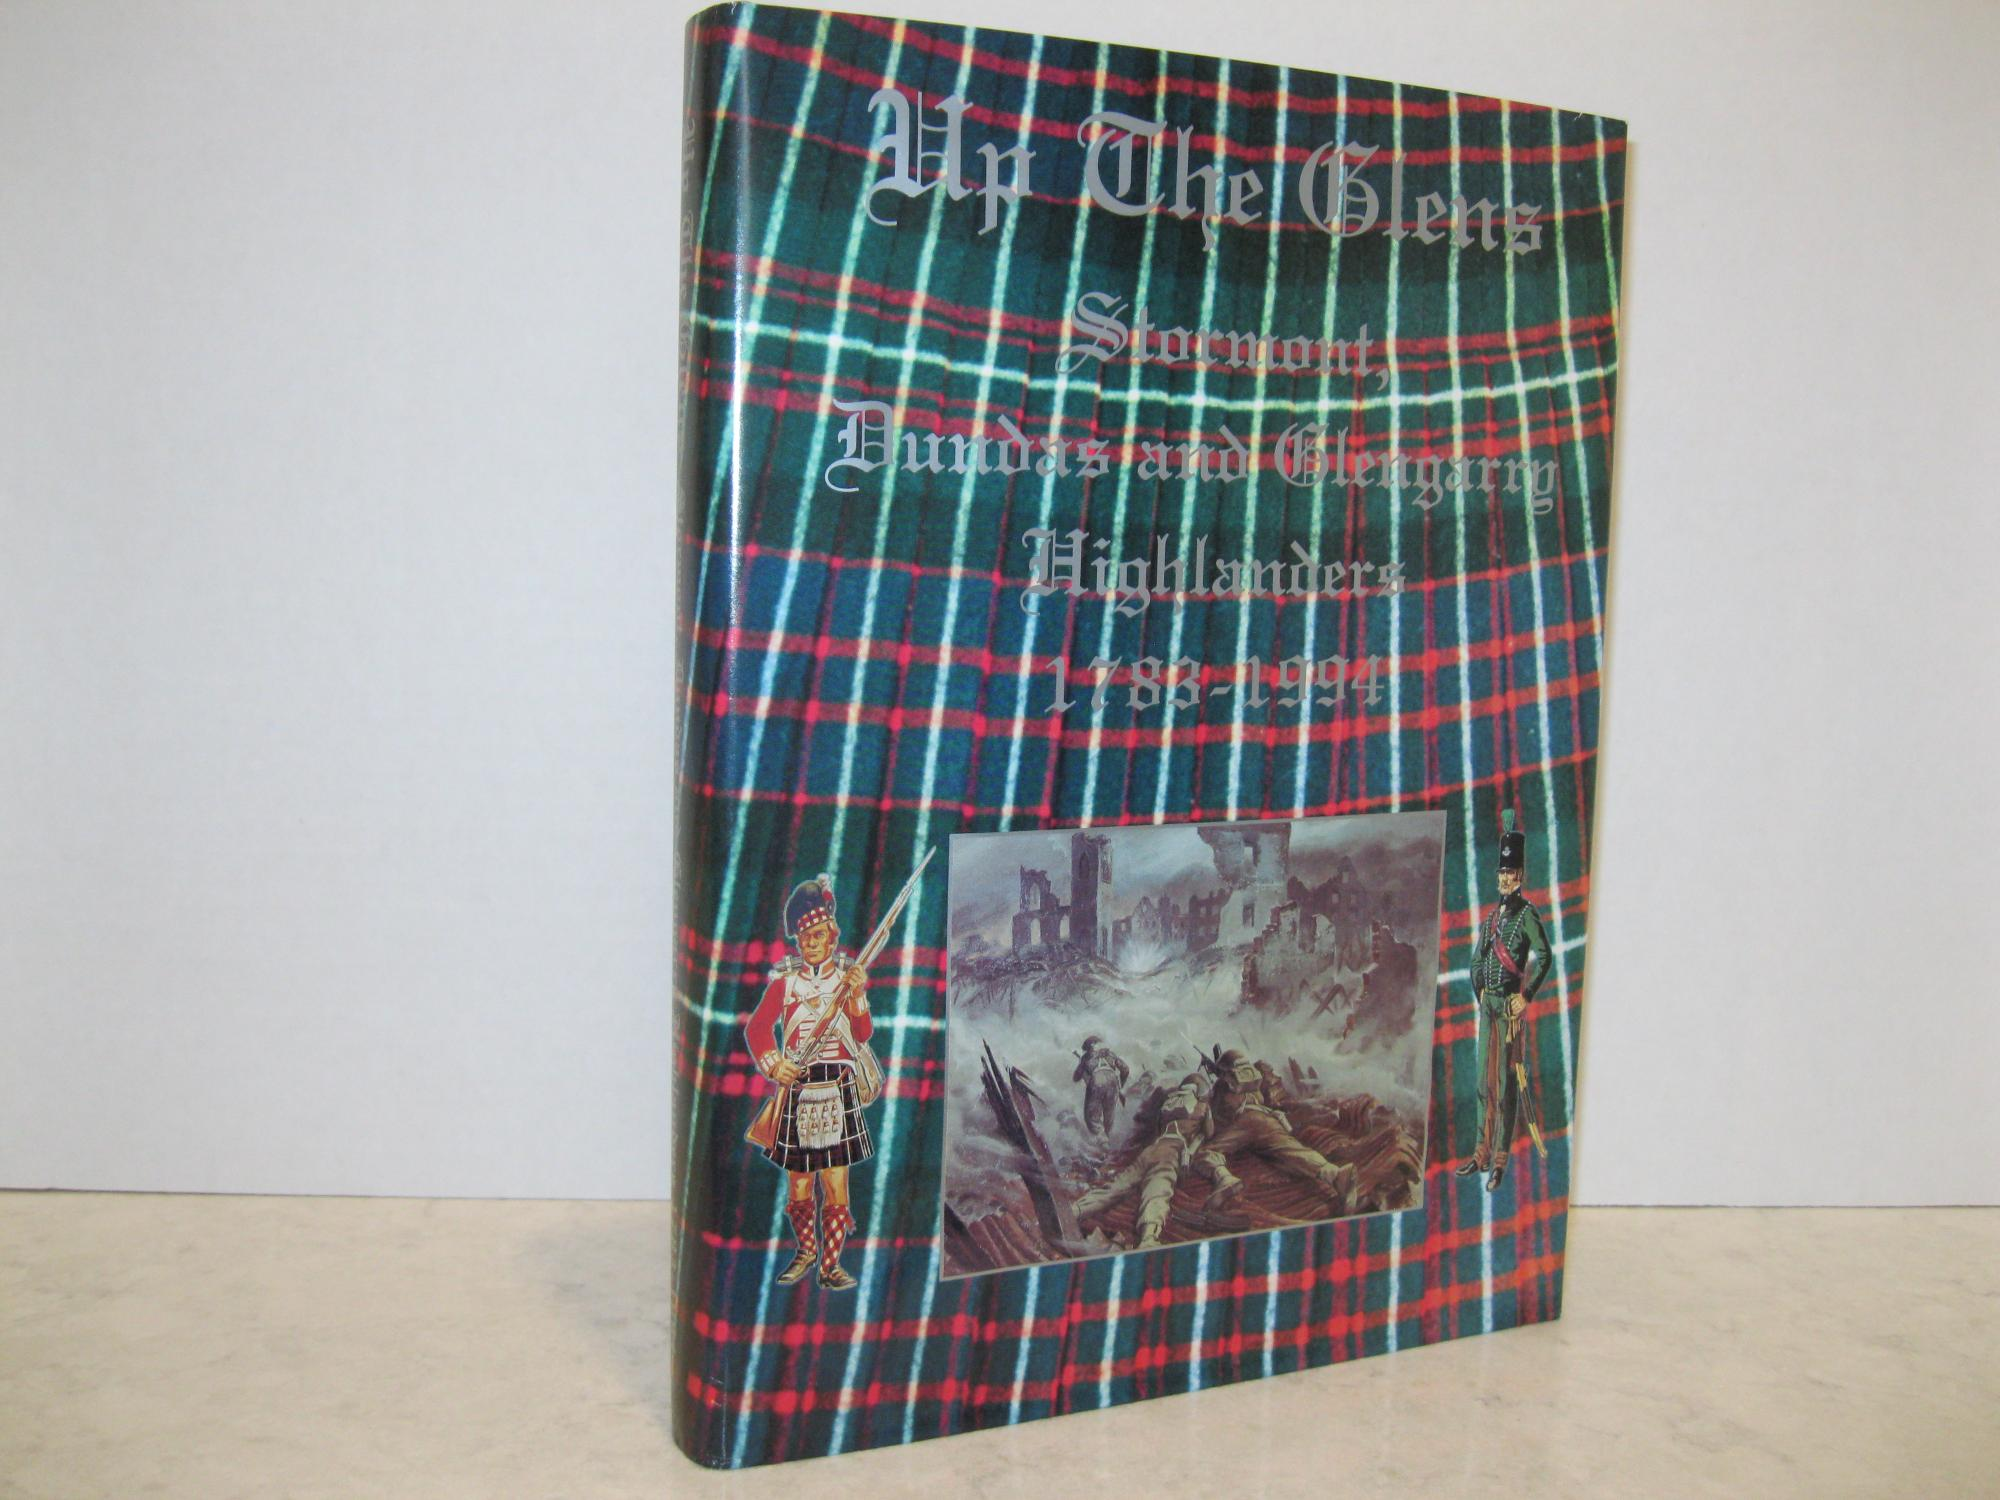 UP_THE_GLENS_THE_STORMONT_DUNDAS_AND_GLENGARRY_HIGHLANDERS_17831994_BOSS_LieutCol_W_&_BrigGen_WJ_PATTERSON_Fine_Hardcover